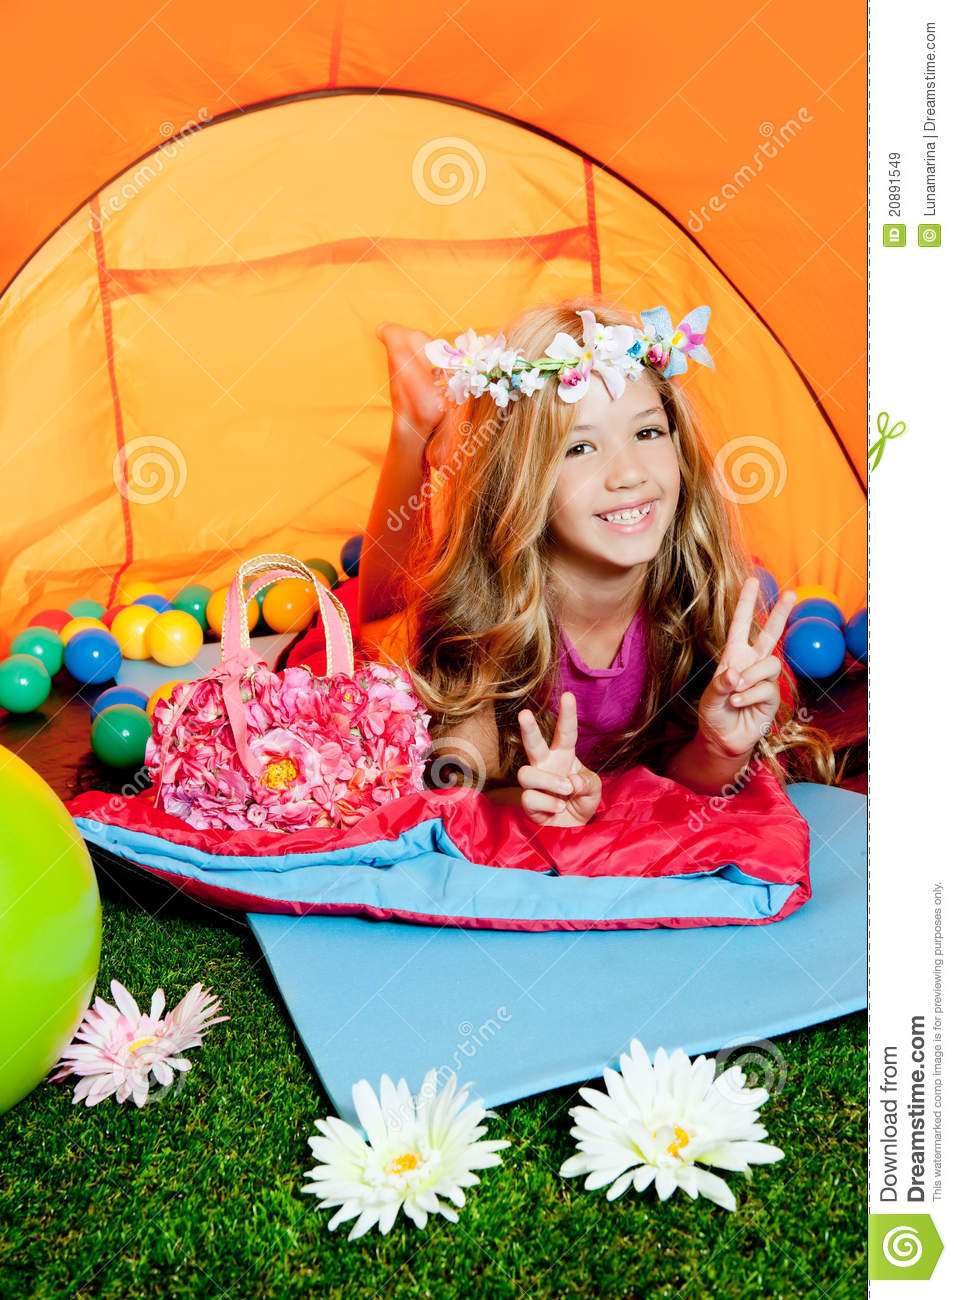 Children Little Girl Lying In Camping Tent Royalty Free